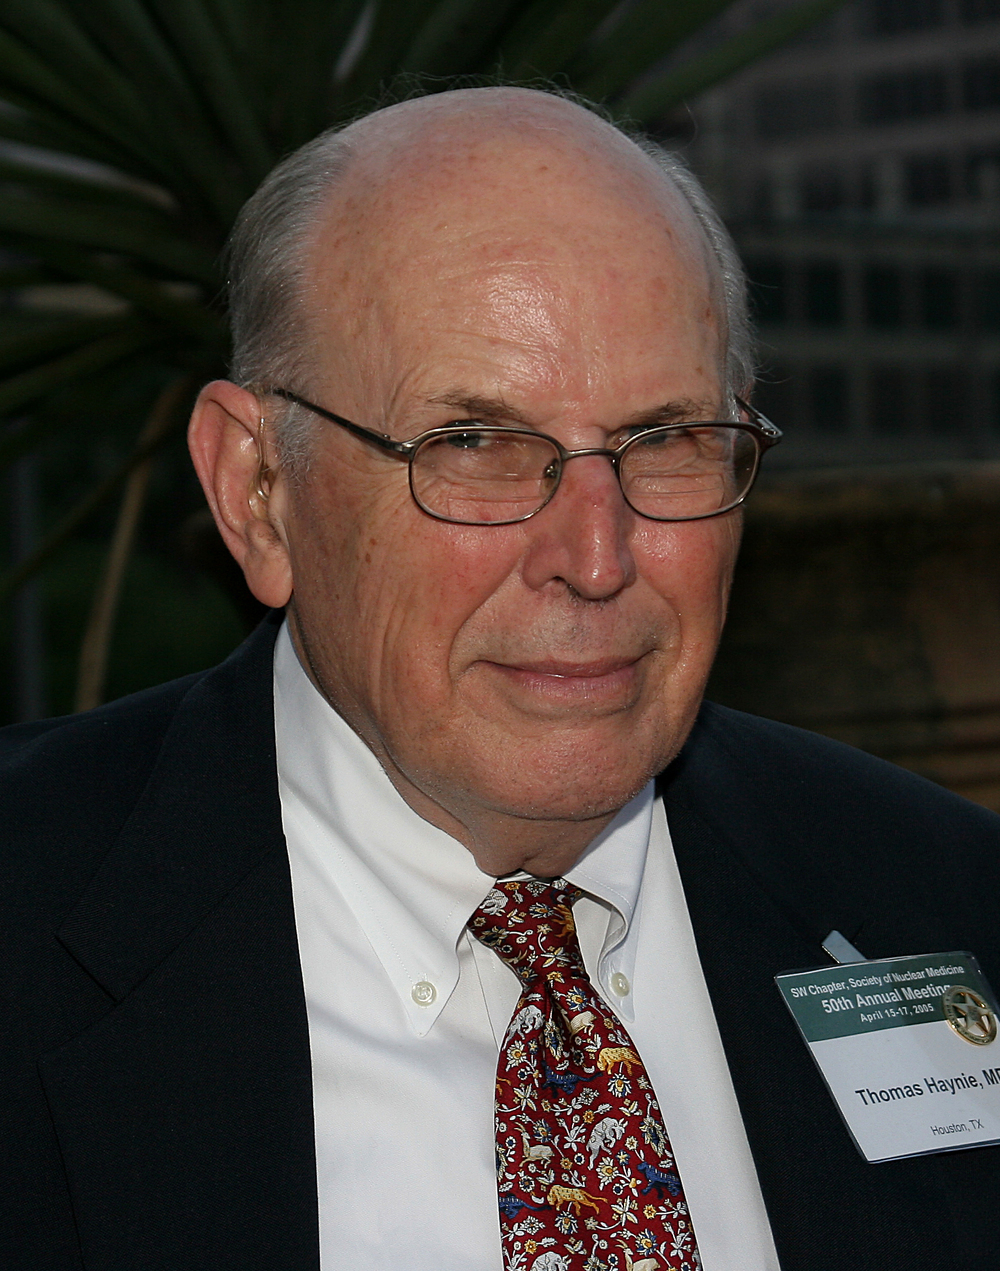 Thomas Haynie, MD 13th president of the Southwestern Chapter (term ending 1969)